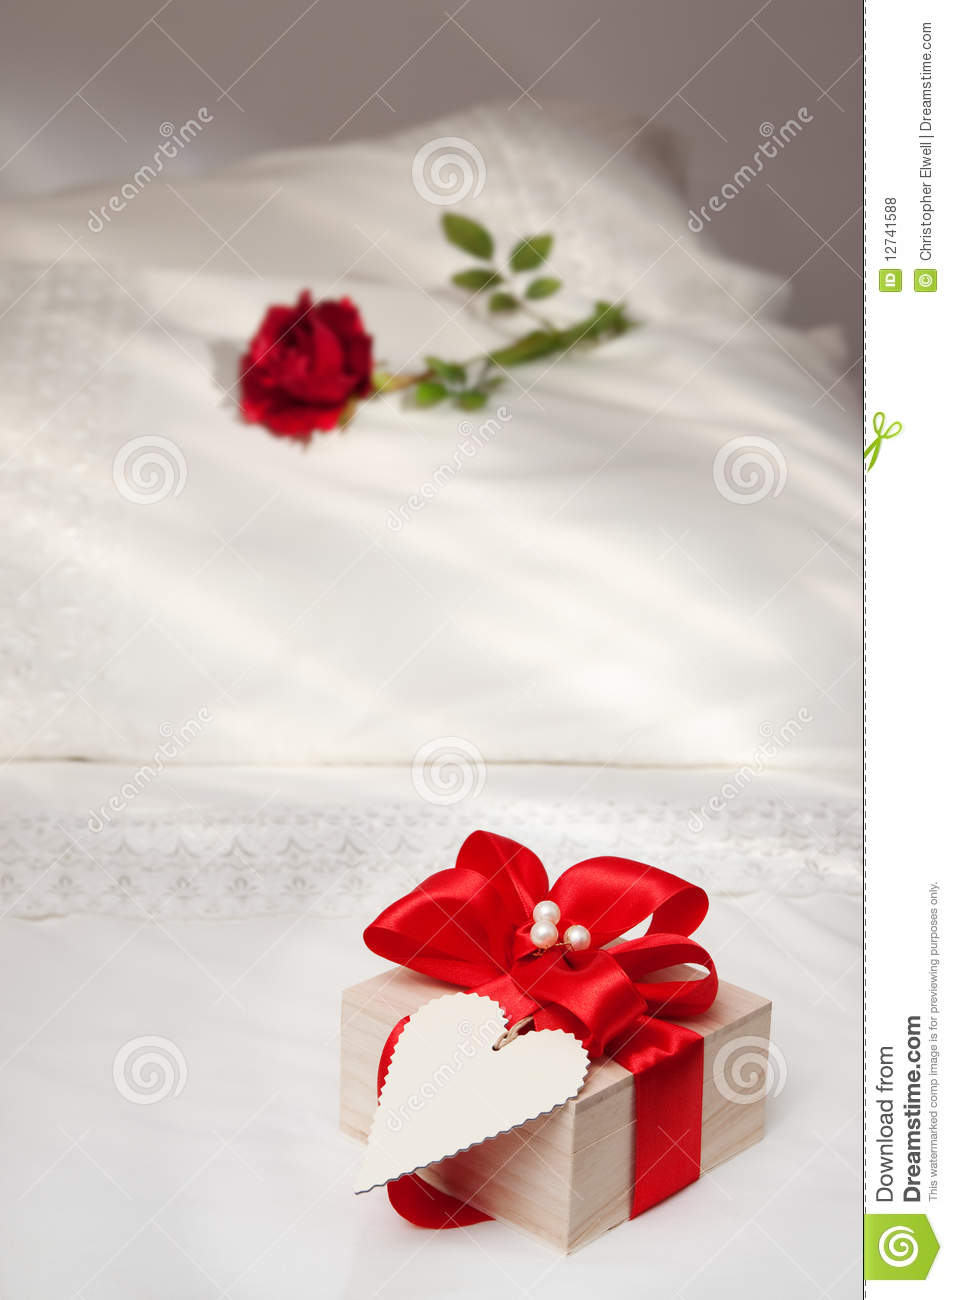 valentine bed royalty free stock photos image 12741588